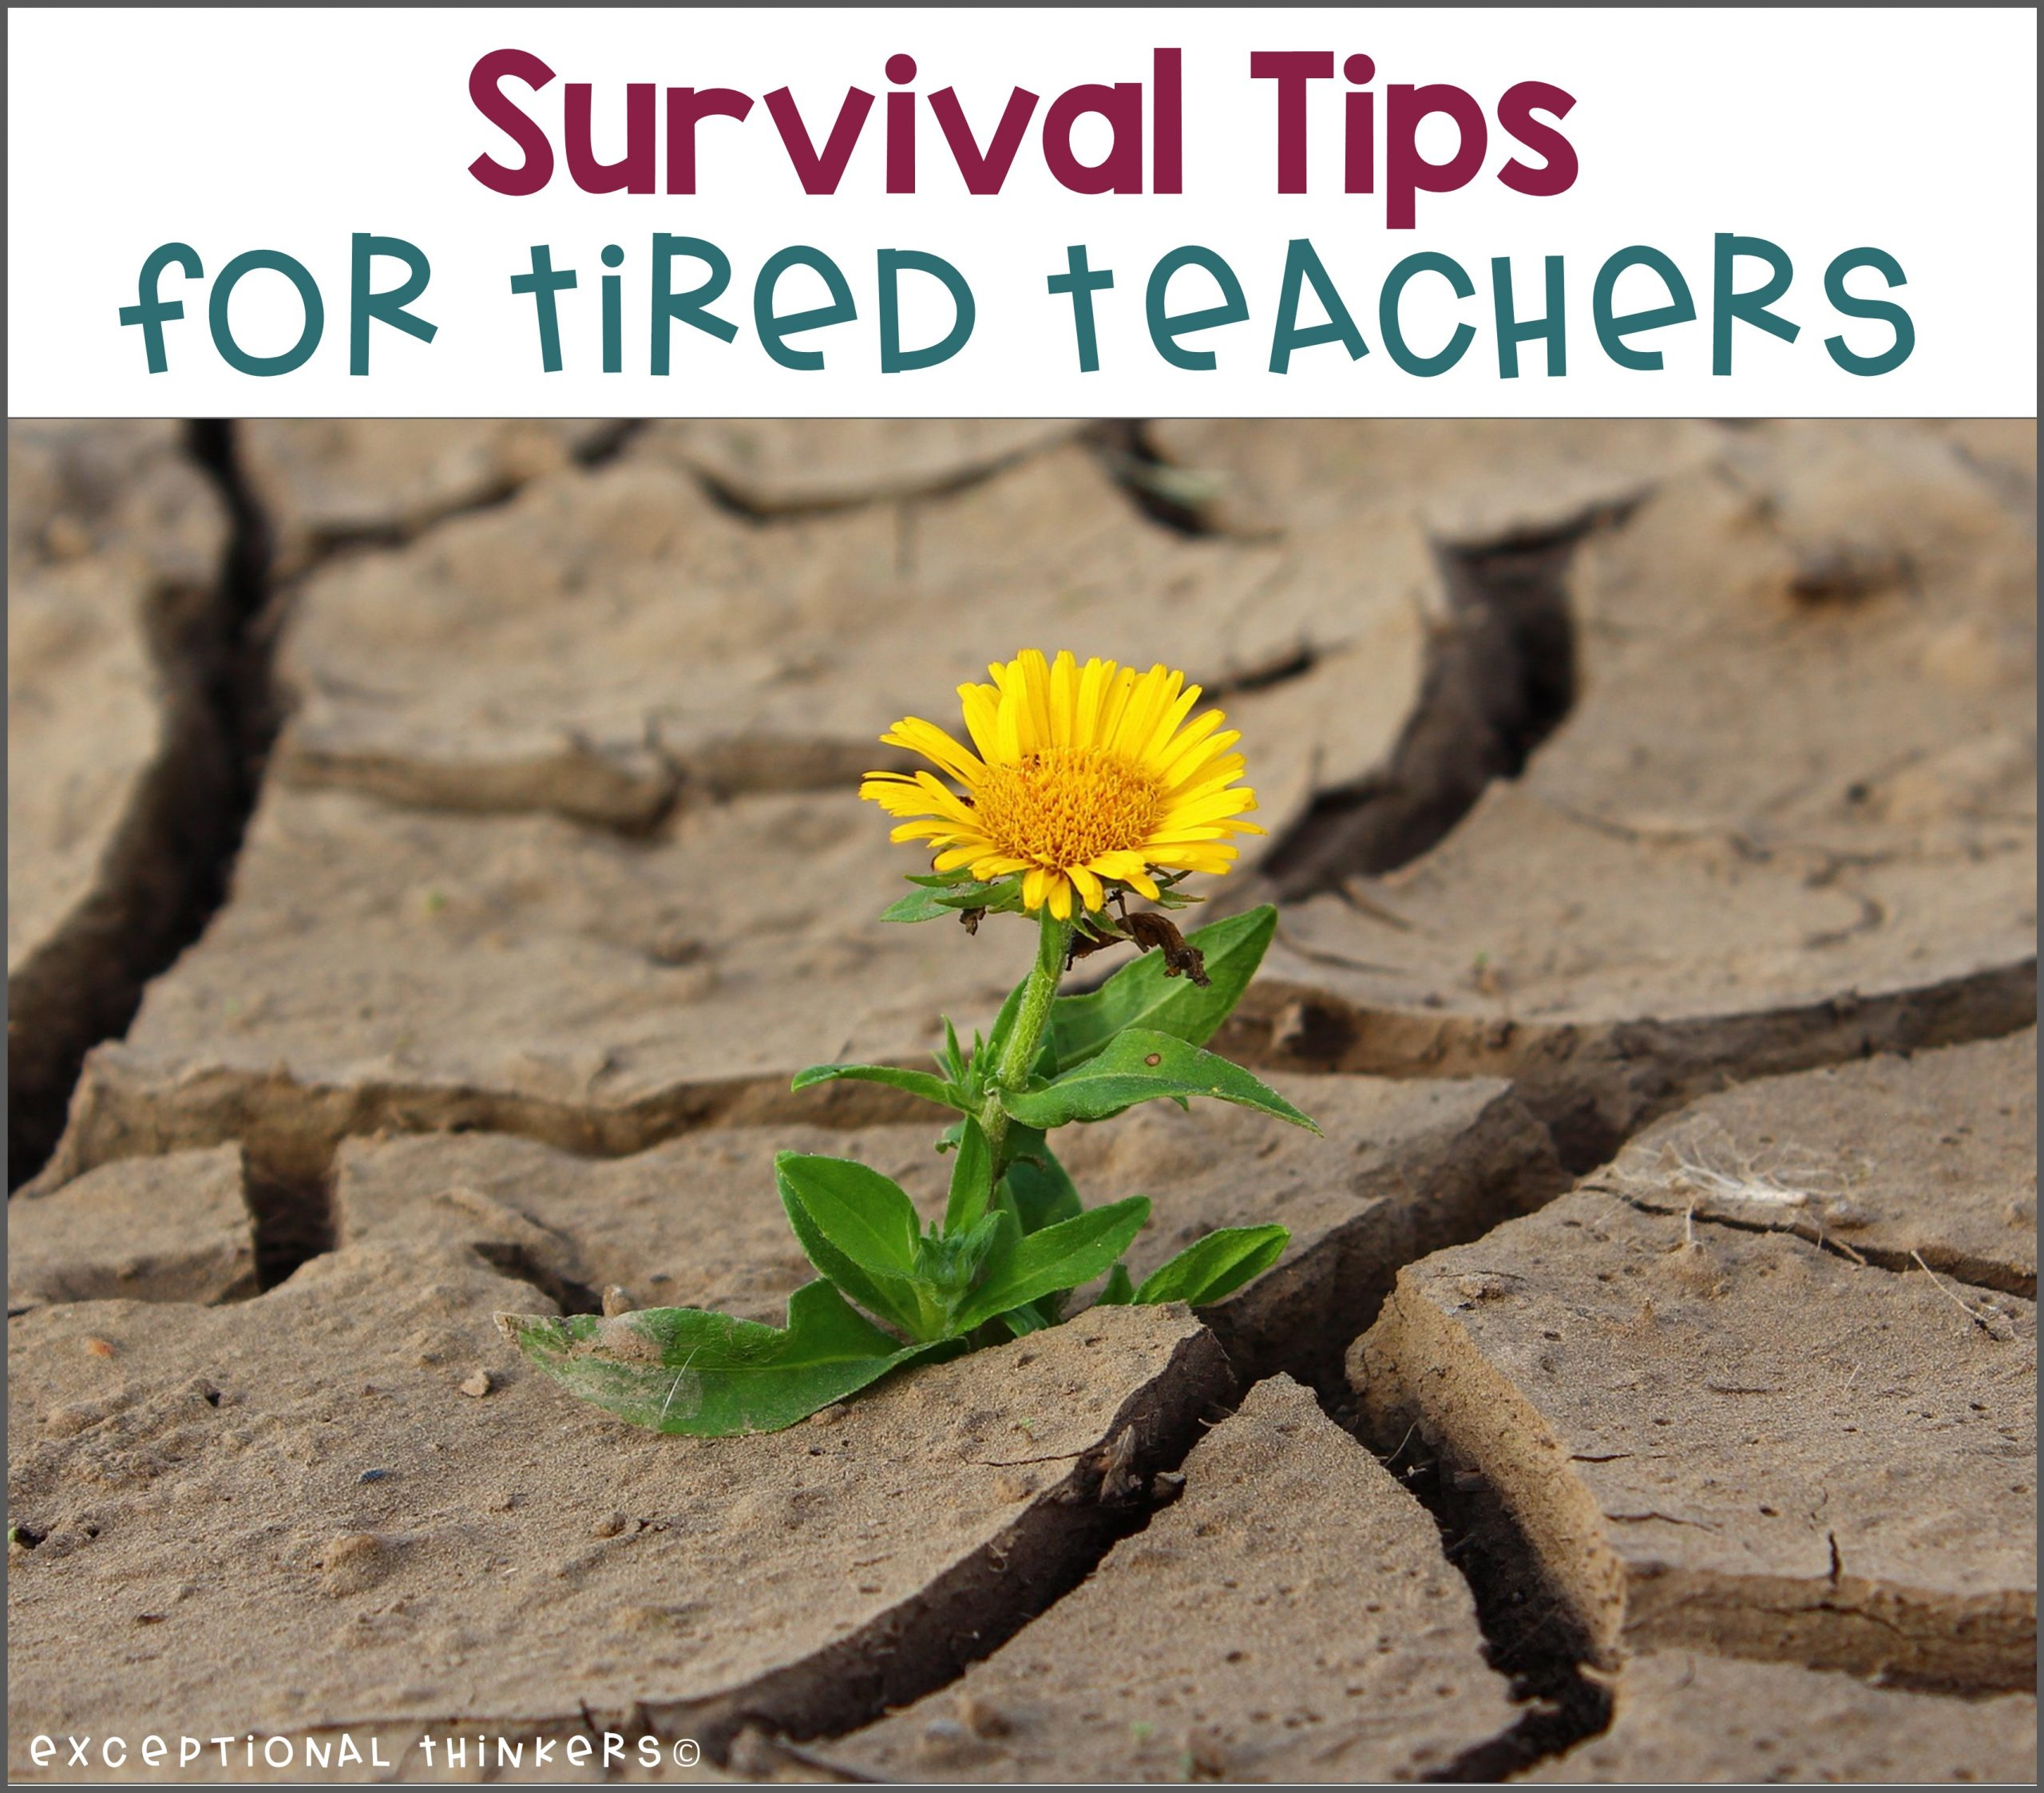 Survival Tips for Tired Teachers